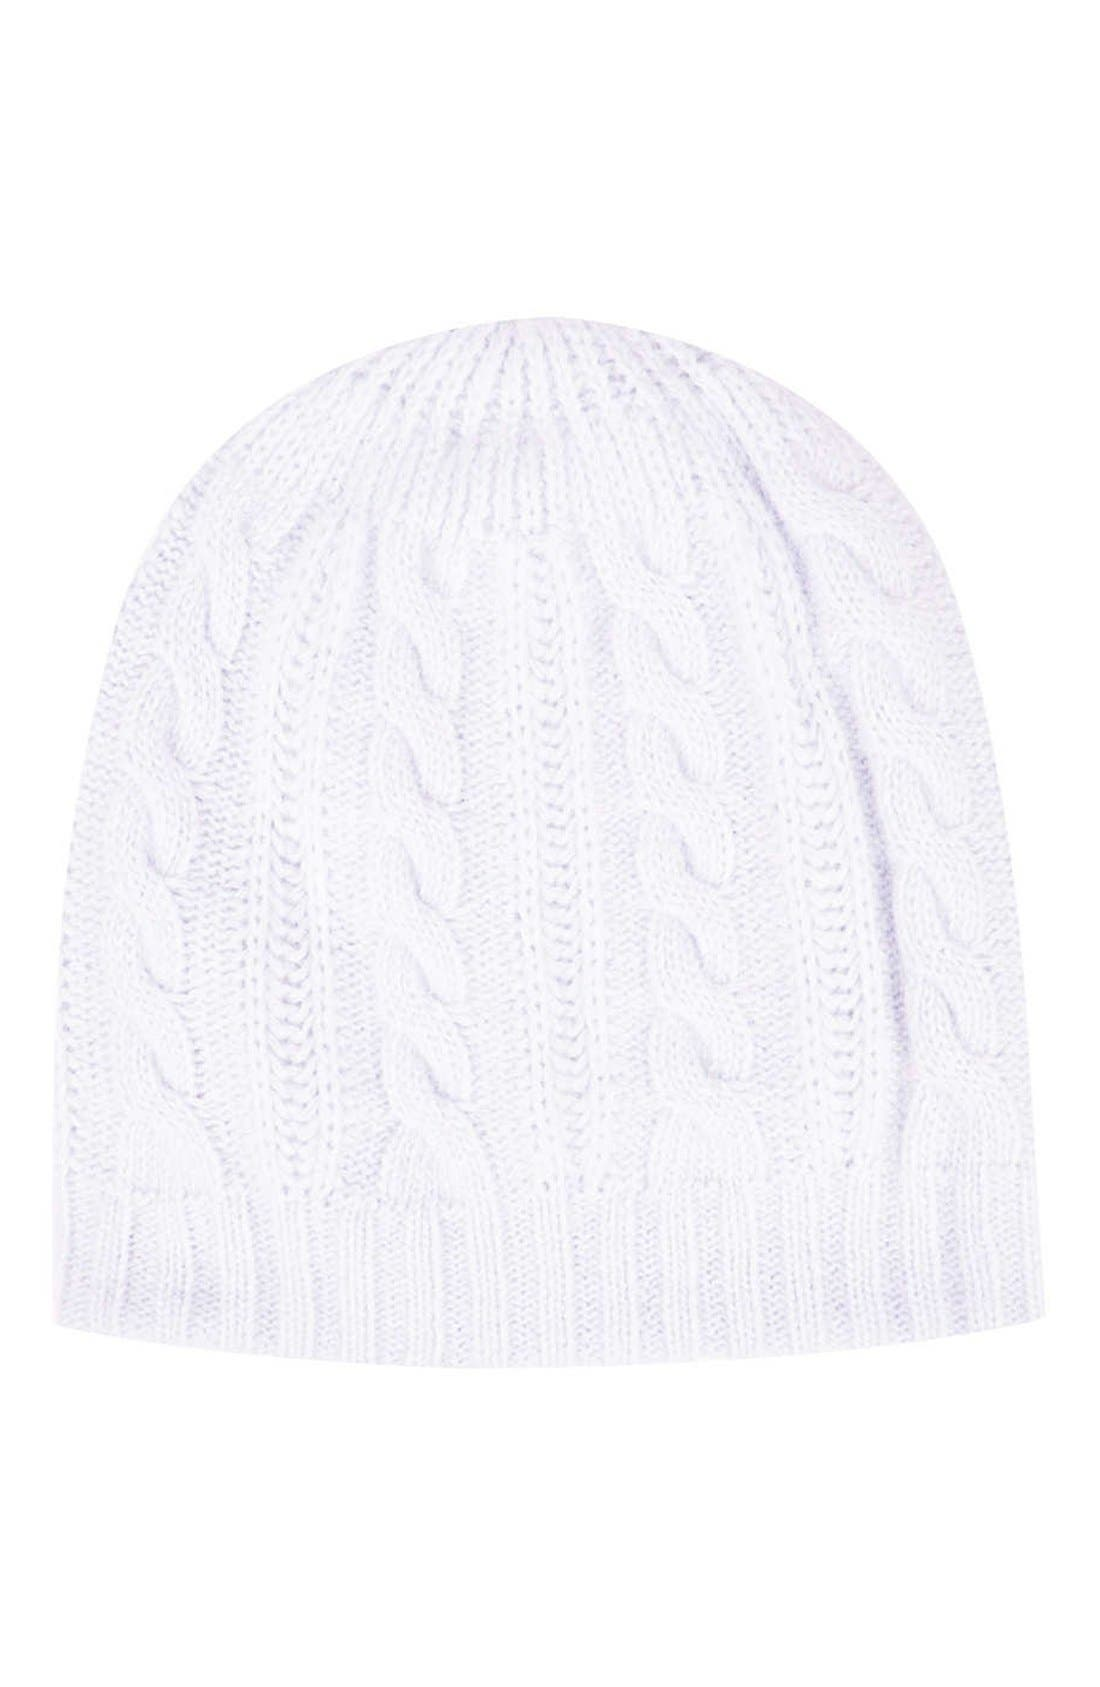 Alternate Image 1 Selected - Topshop Cable Knit Angora Beanie